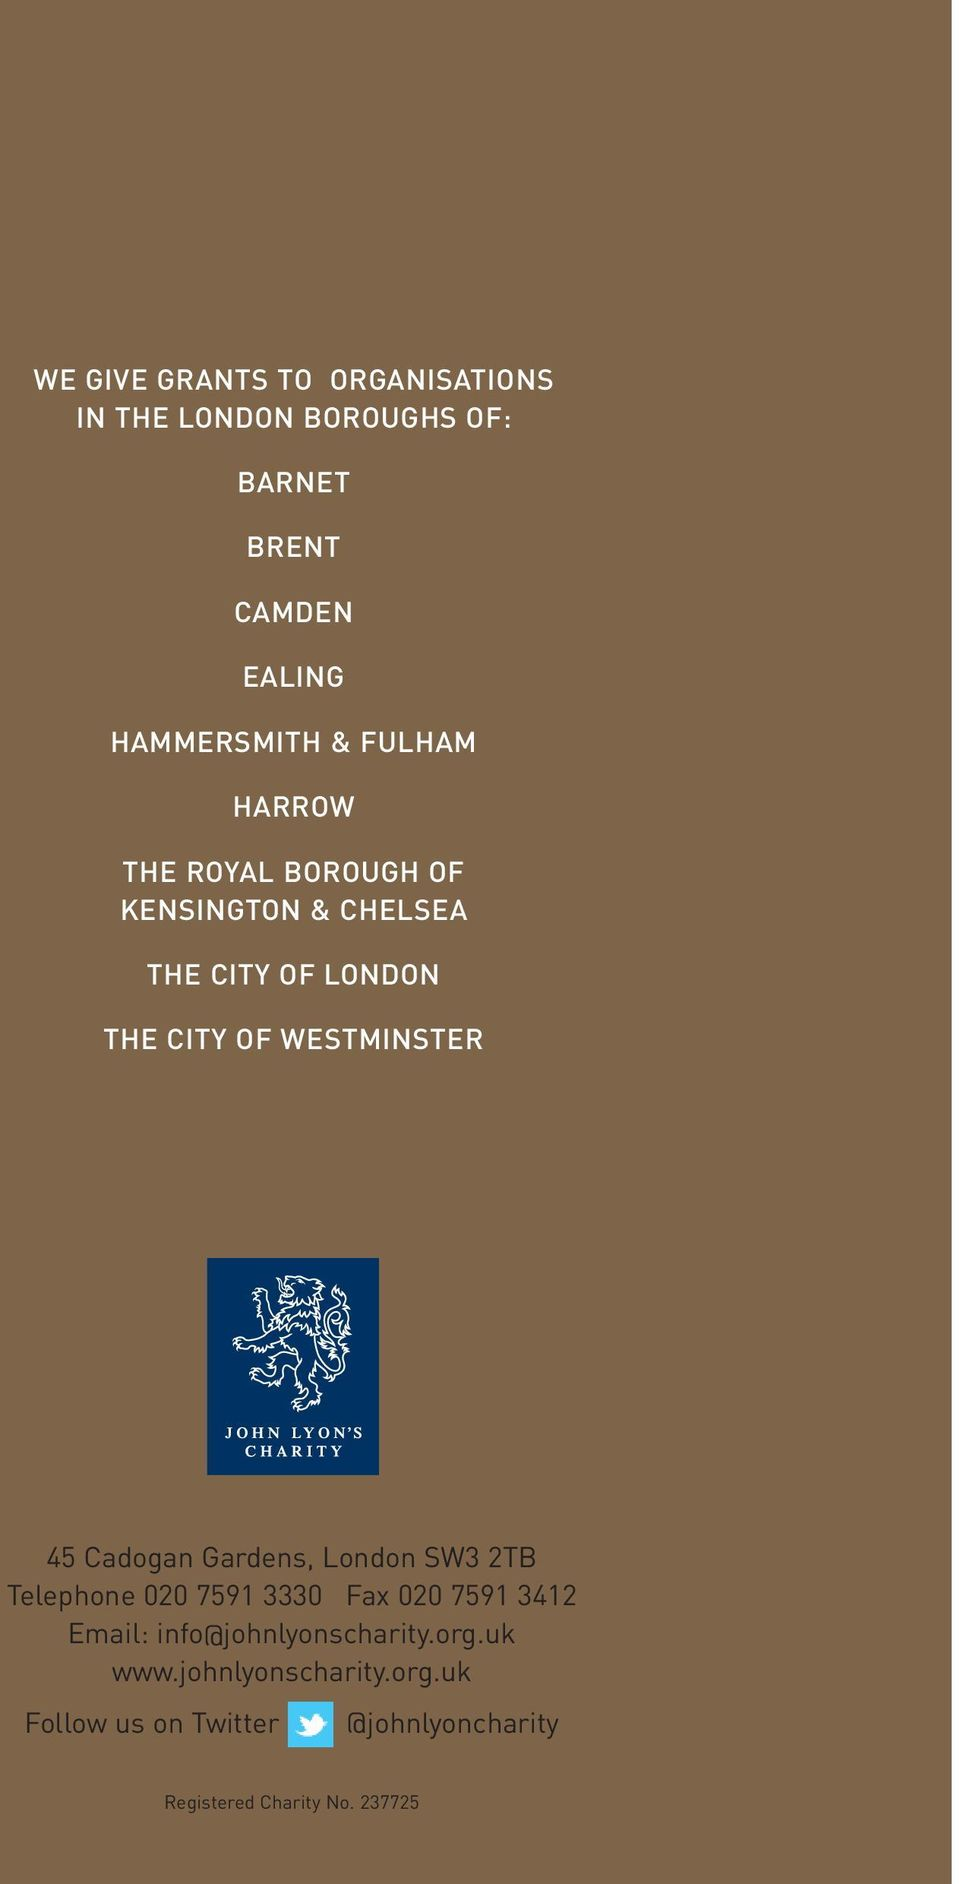 CITY OF WESTMINSTER 45 Cadogan Gardens, London SW3 2TB Telephone 020 7591 3330 Fax 020 7591